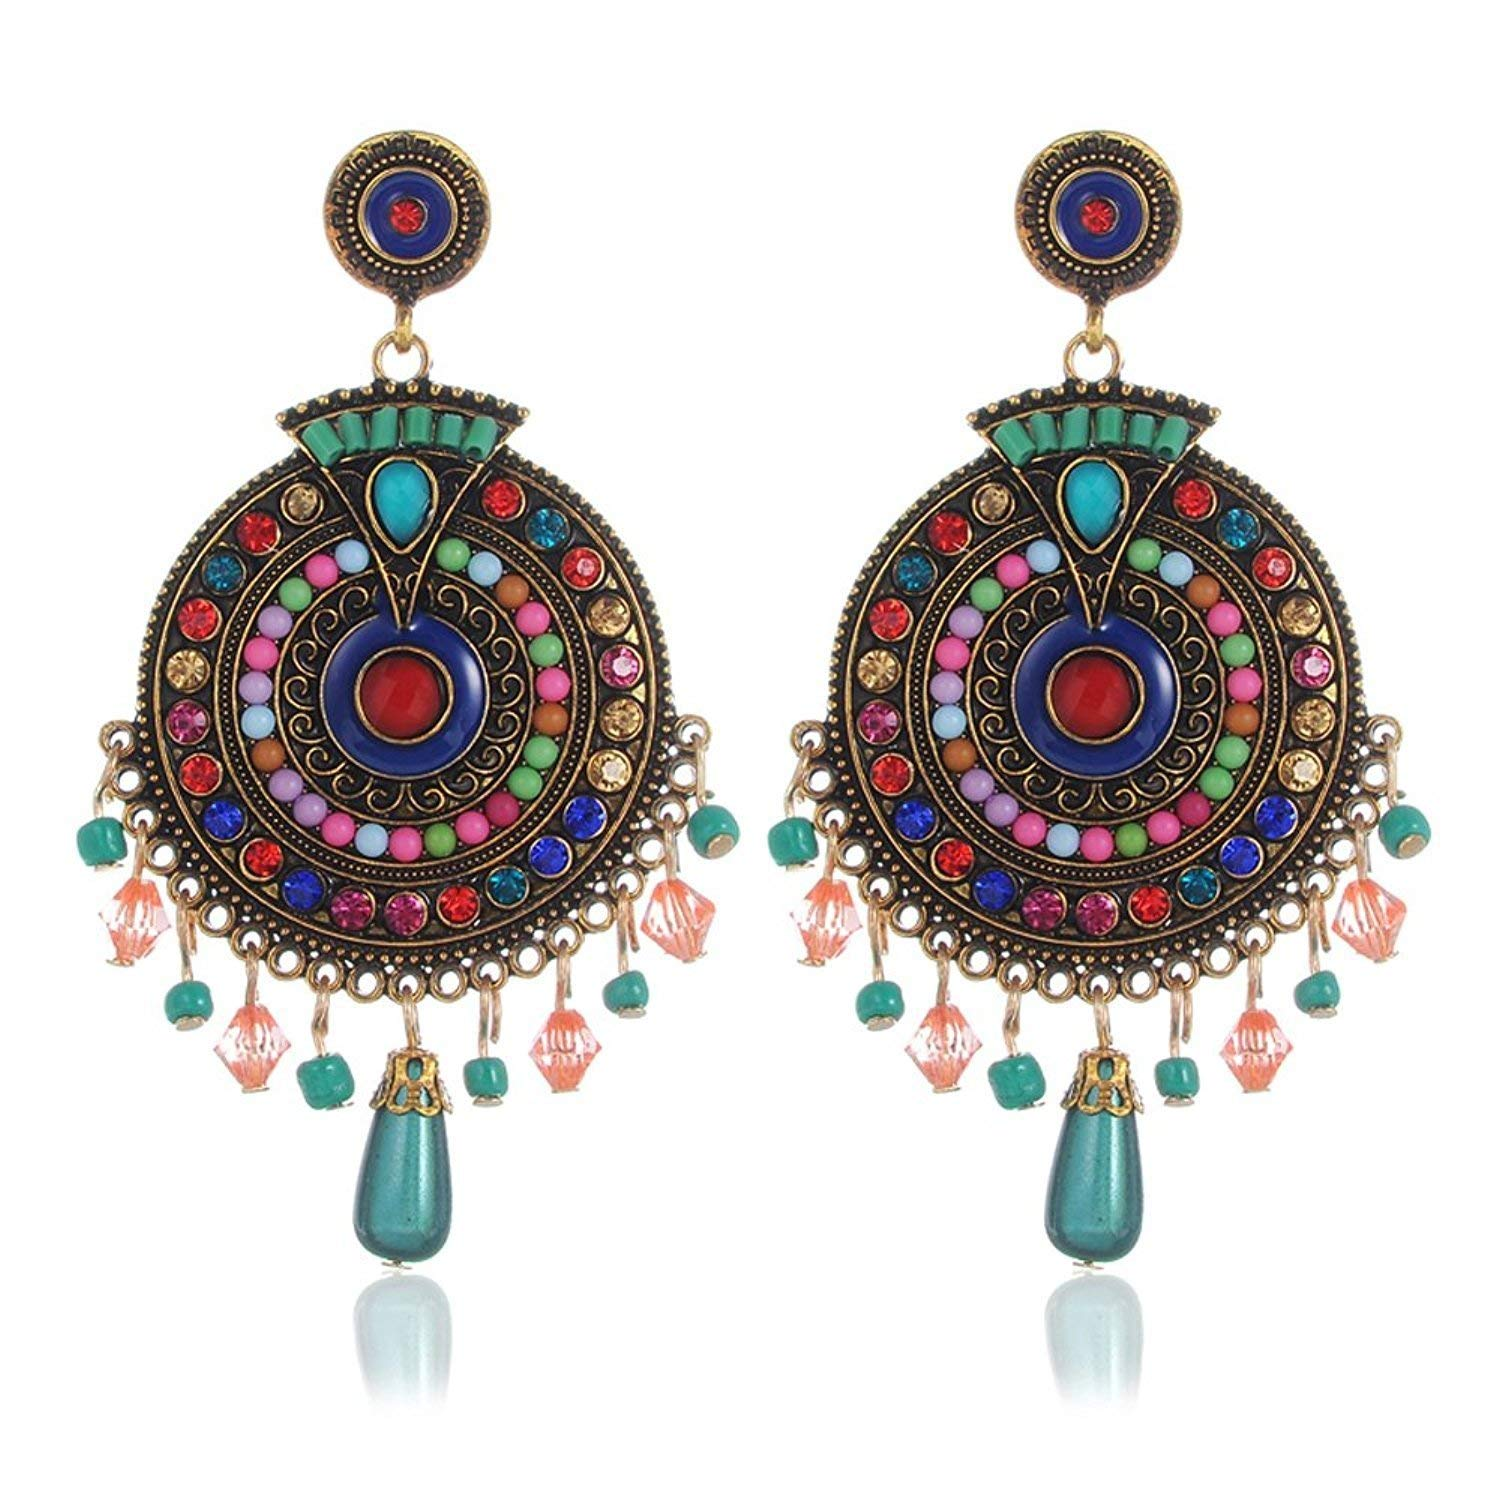 Precious Metal Fashion Jewellery Bohemian Stylish - BohoEntice